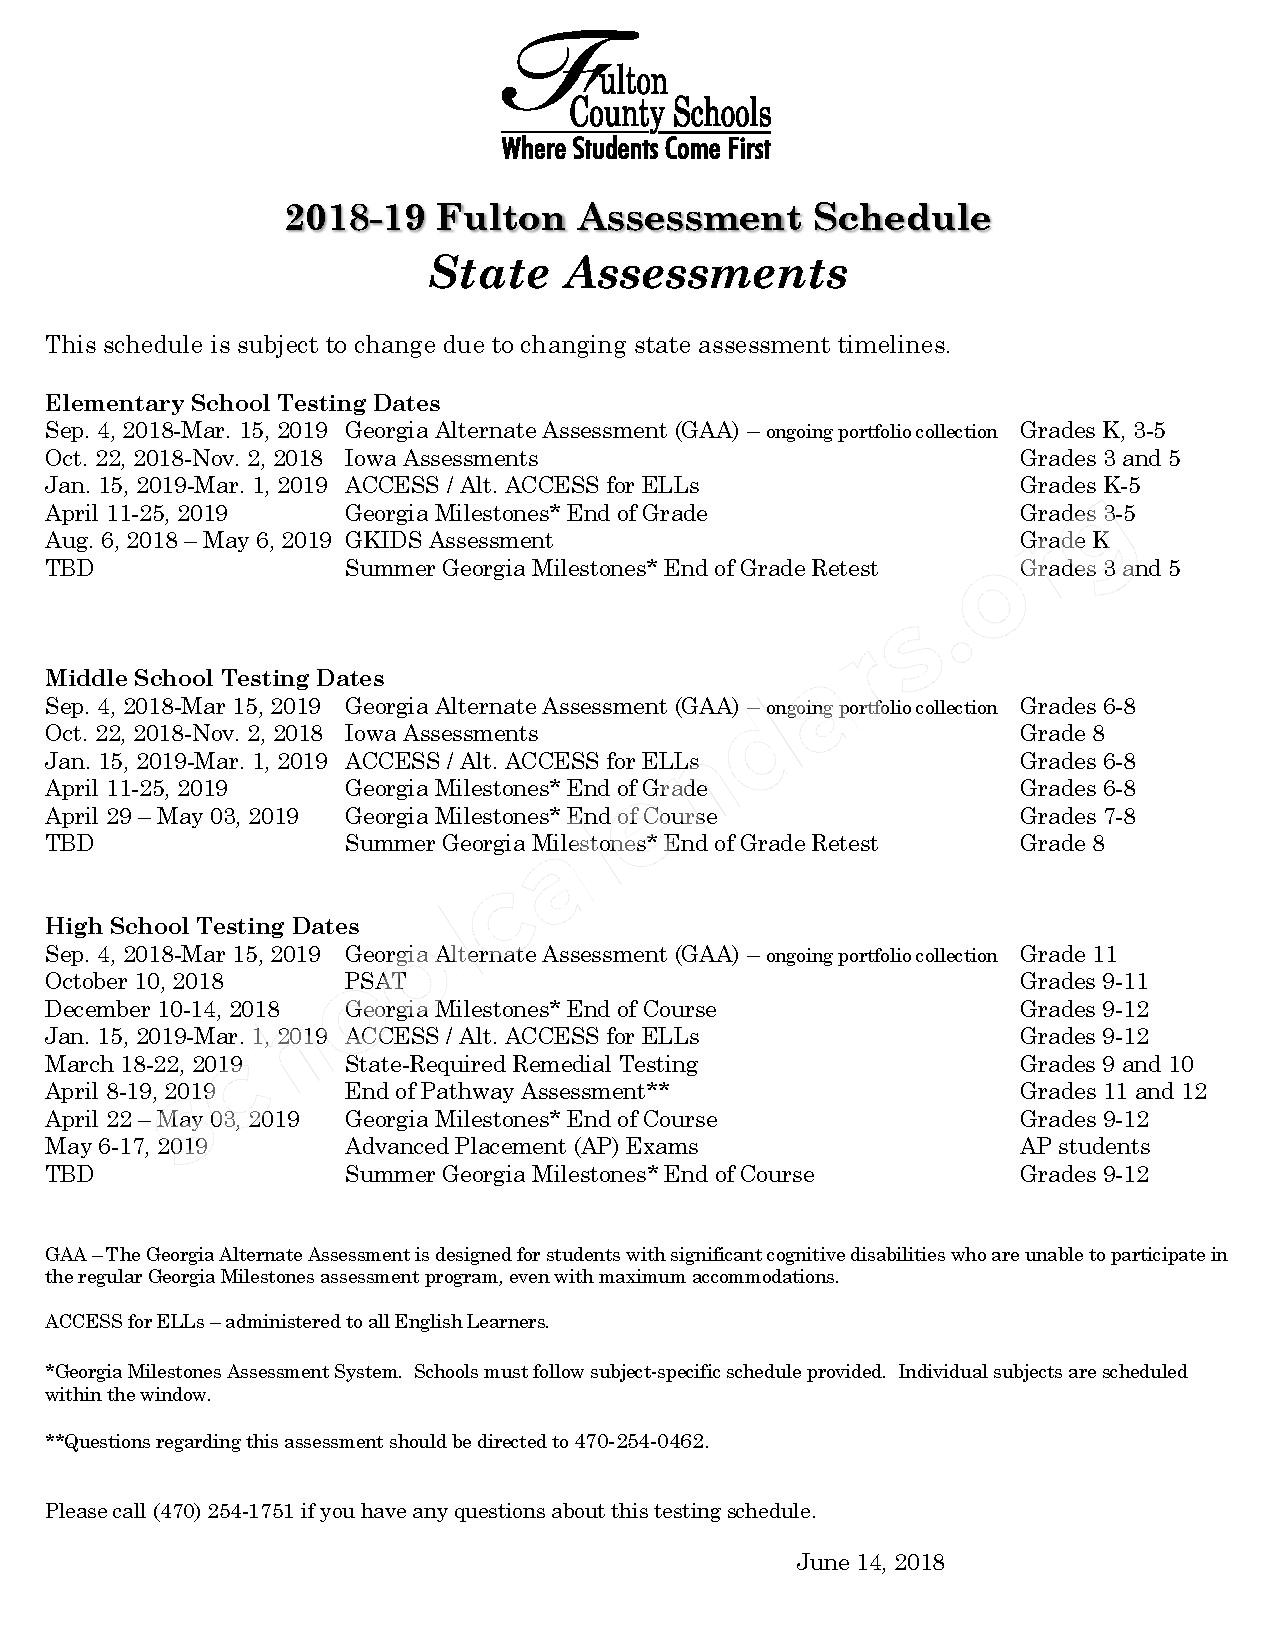 2018 - 2019 Fulton Testing Schedule – Holcomb Bridge Middle School – page 1